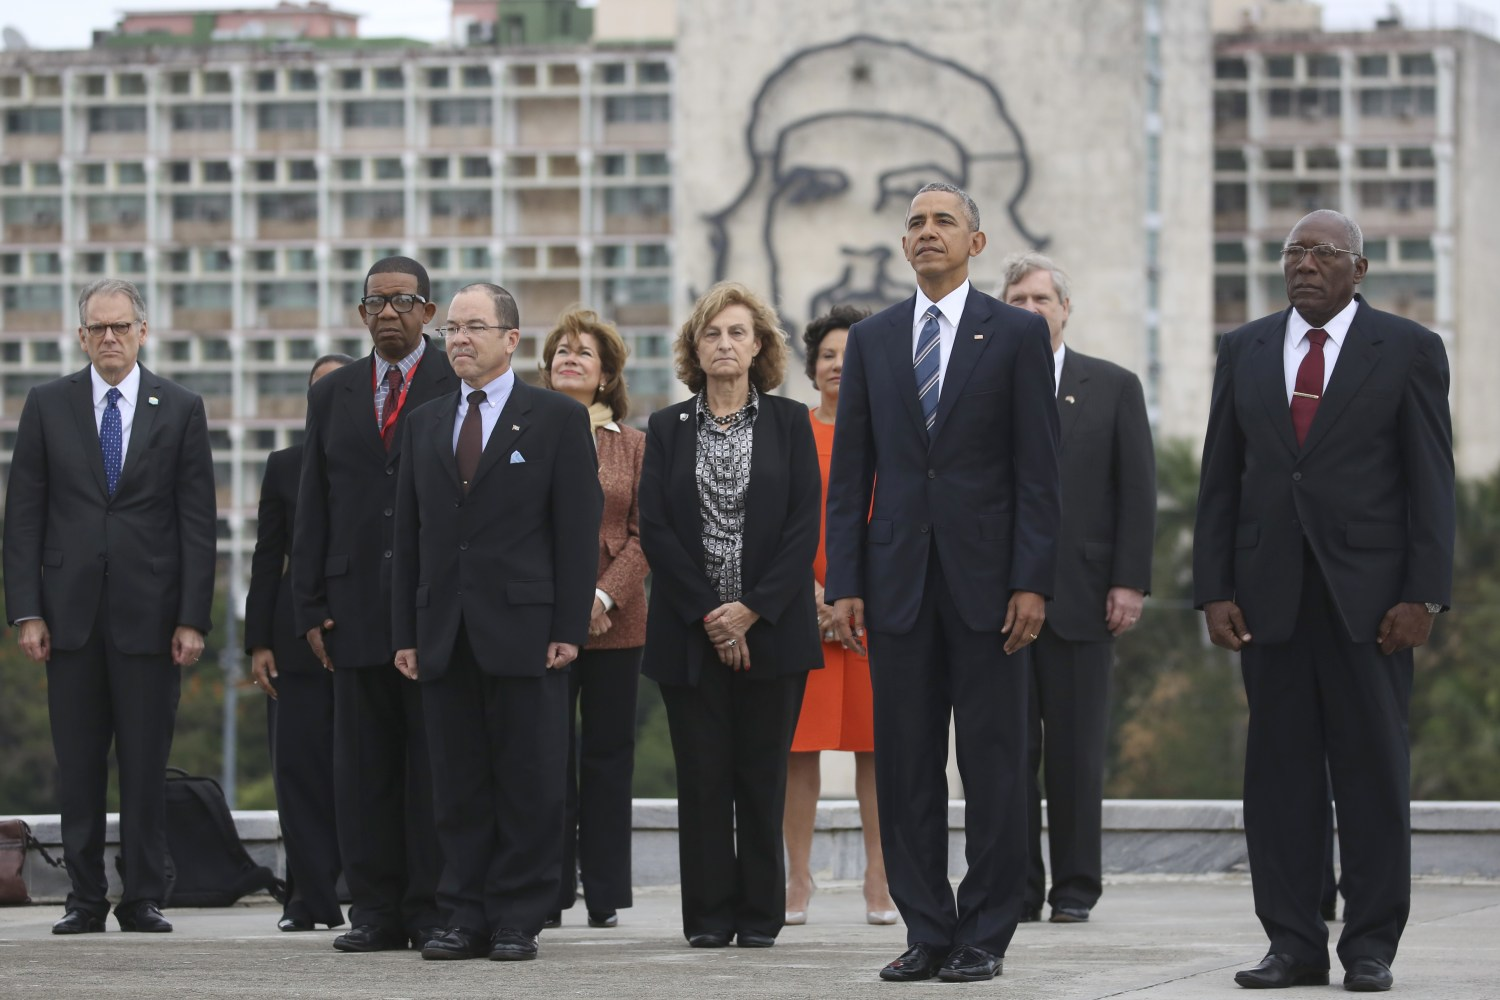 160321-obama-che-guevara-mdl-02_bfd171d1